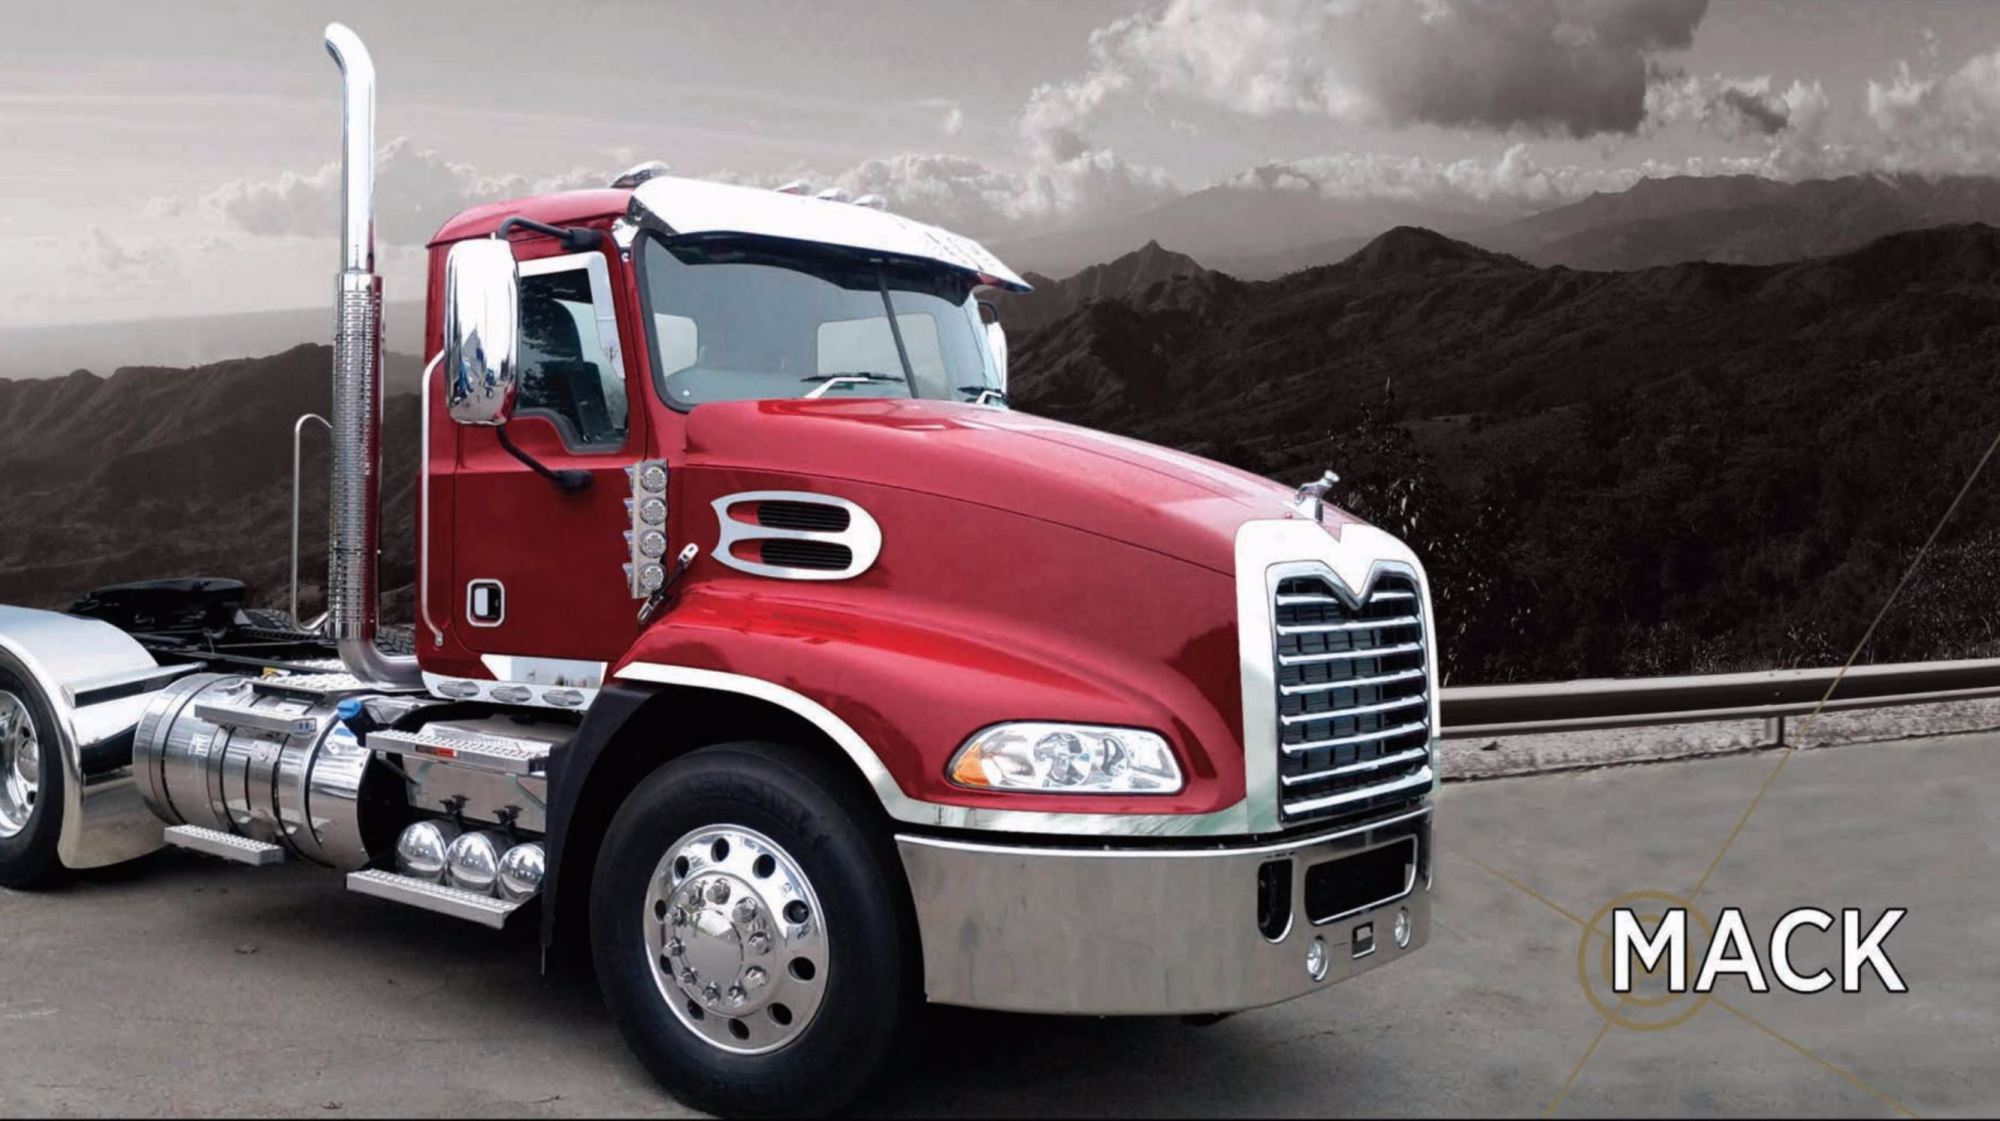 hight resolution of mack truck picture jpg